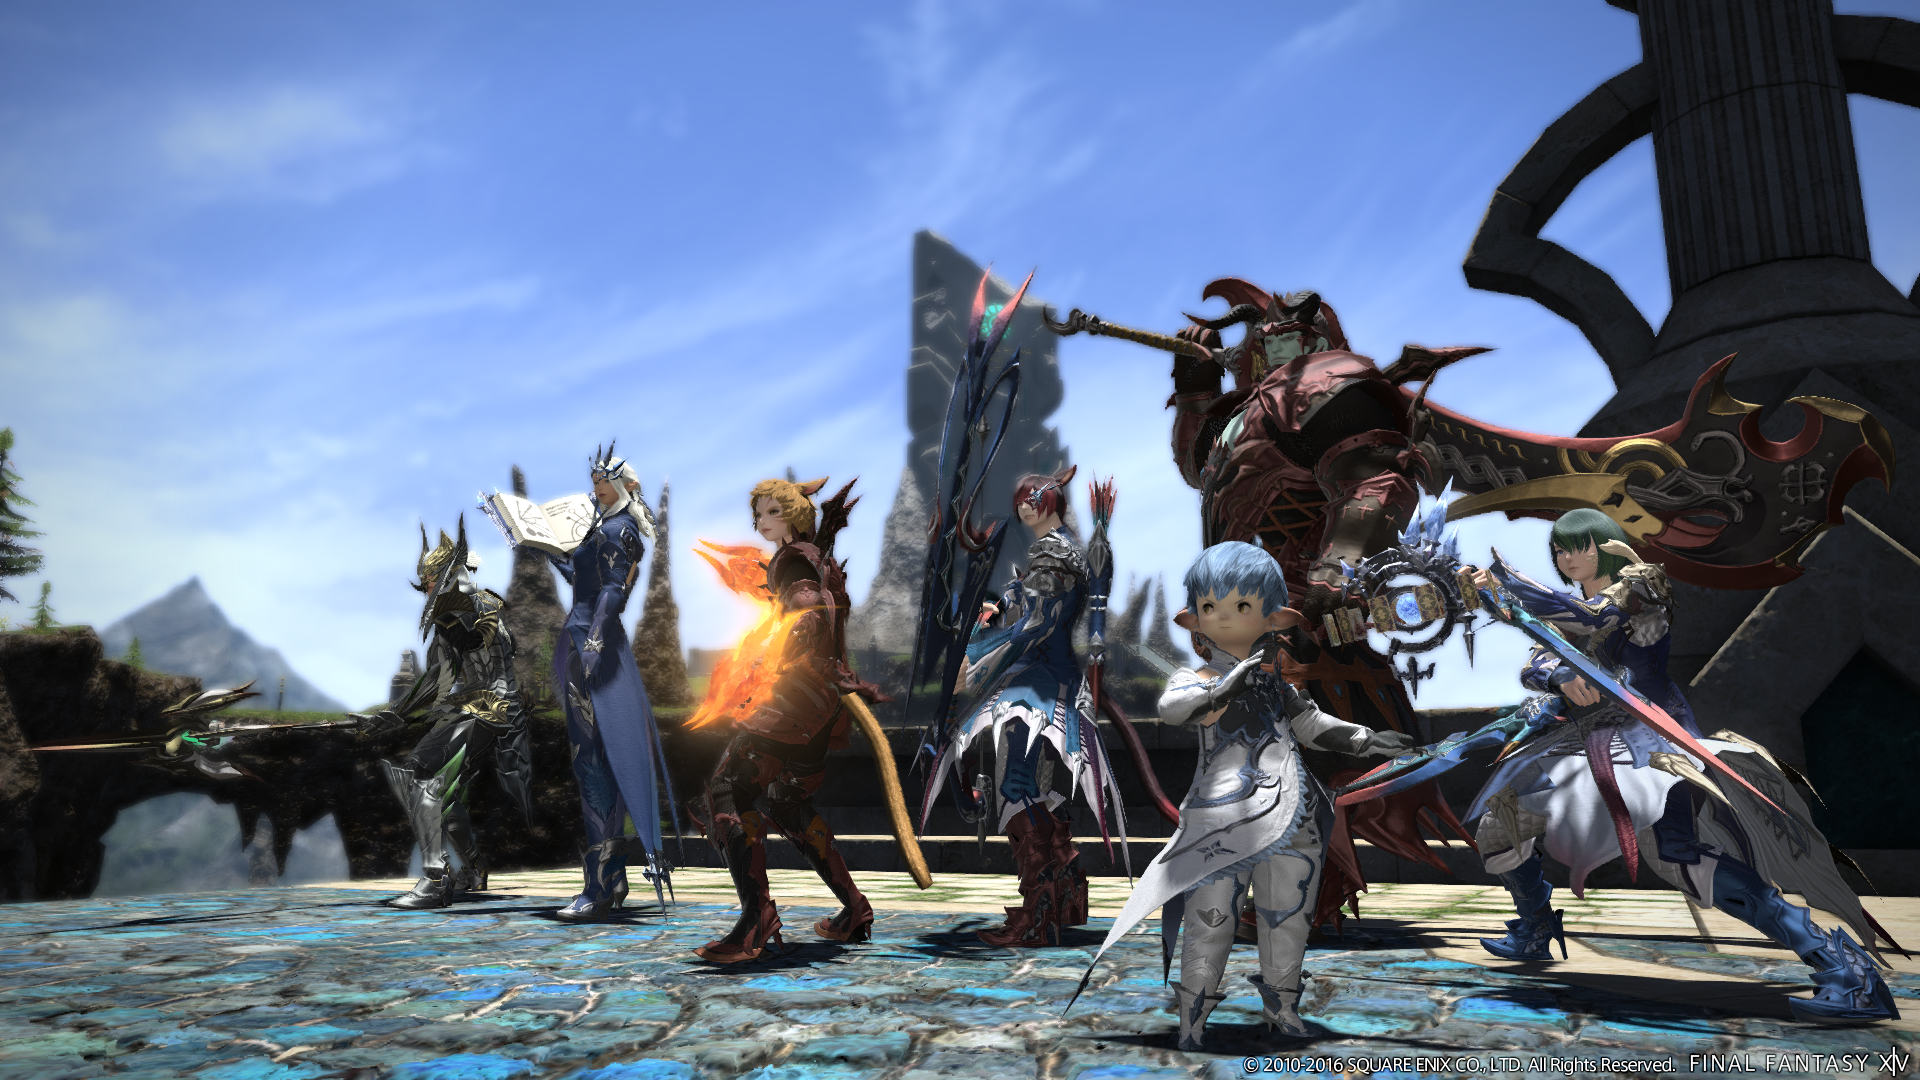 Final Fantasy XIV screenshots detail the new content in